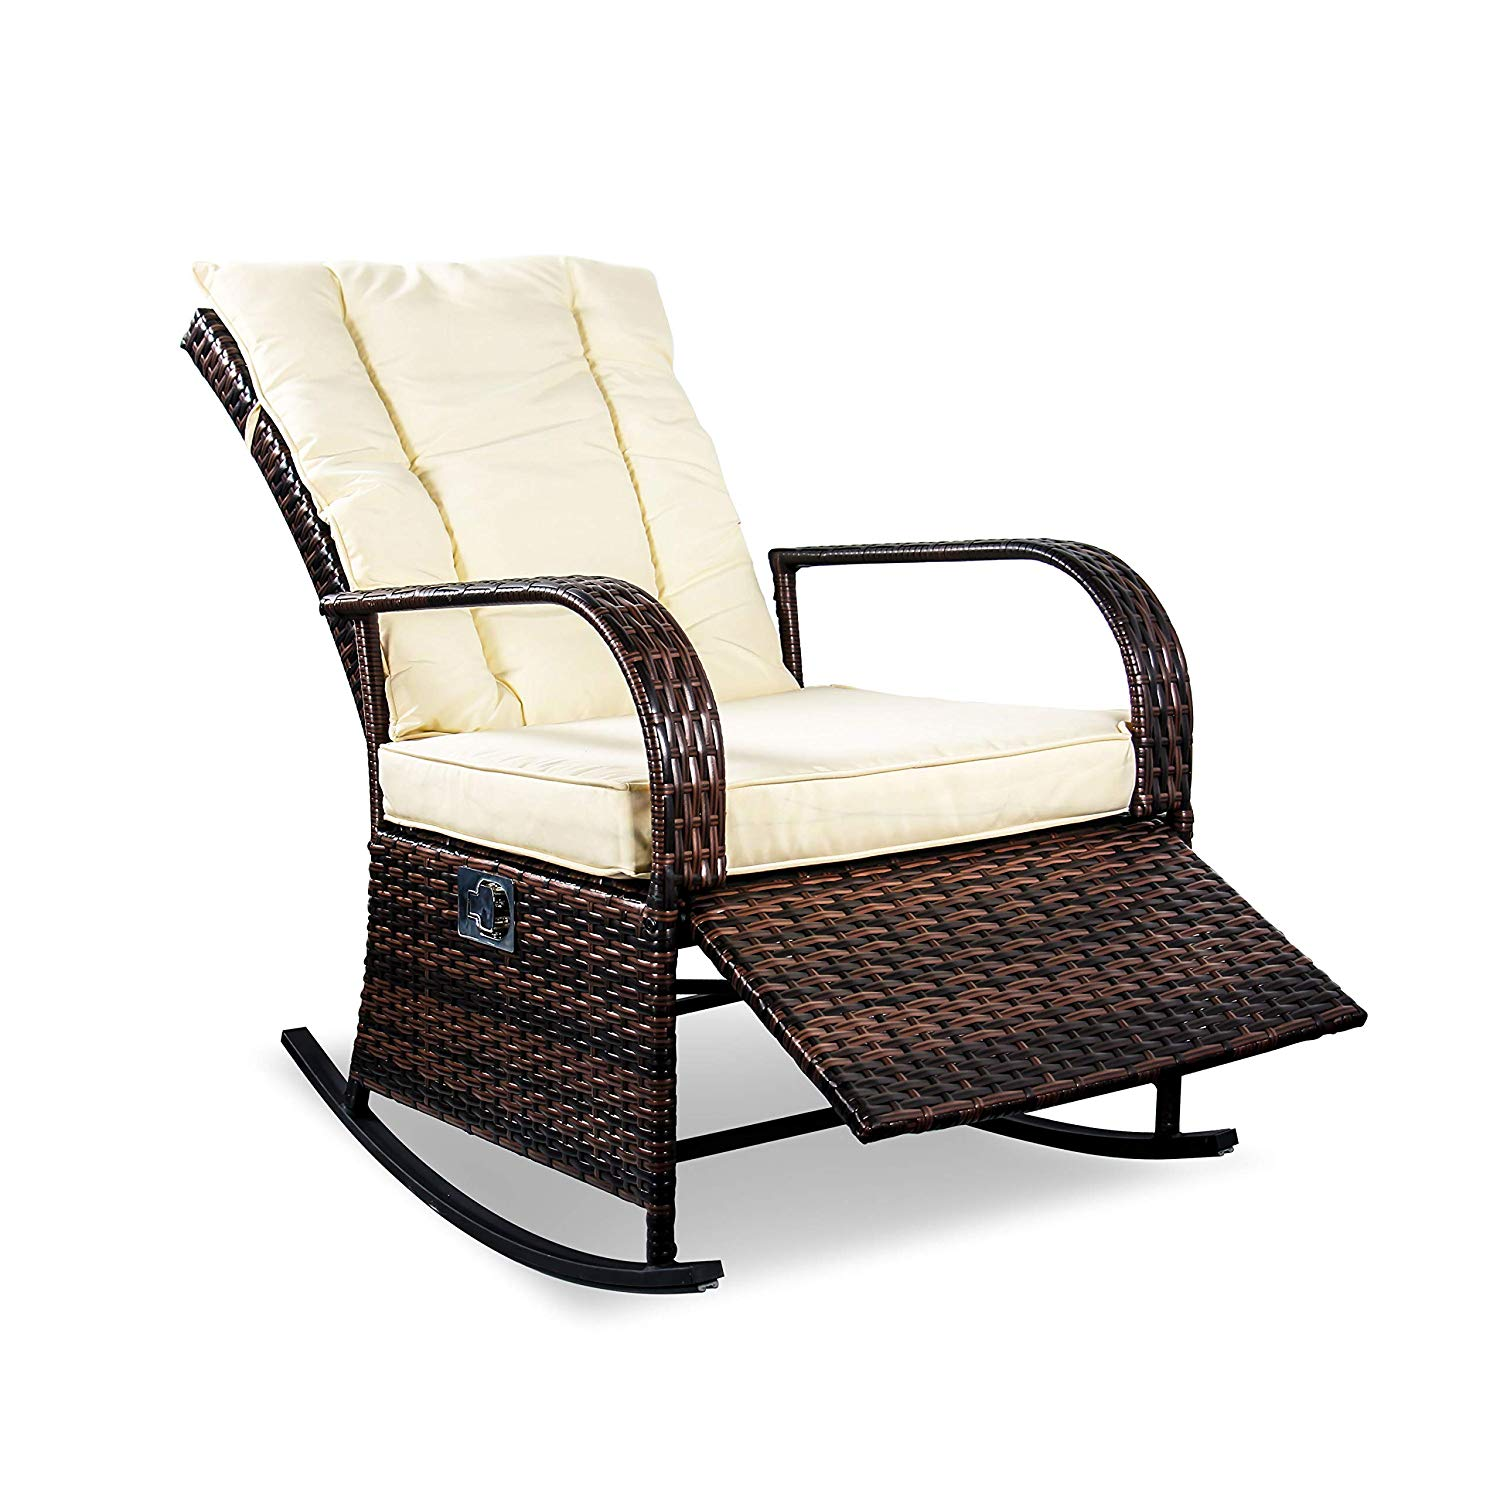 SCYL Color Your Life Outdoor Wicker Rocking Chair with Adjustable Backrest and Footrest,All Weather Patio Porch Deck Reclining Chair w/Cushion